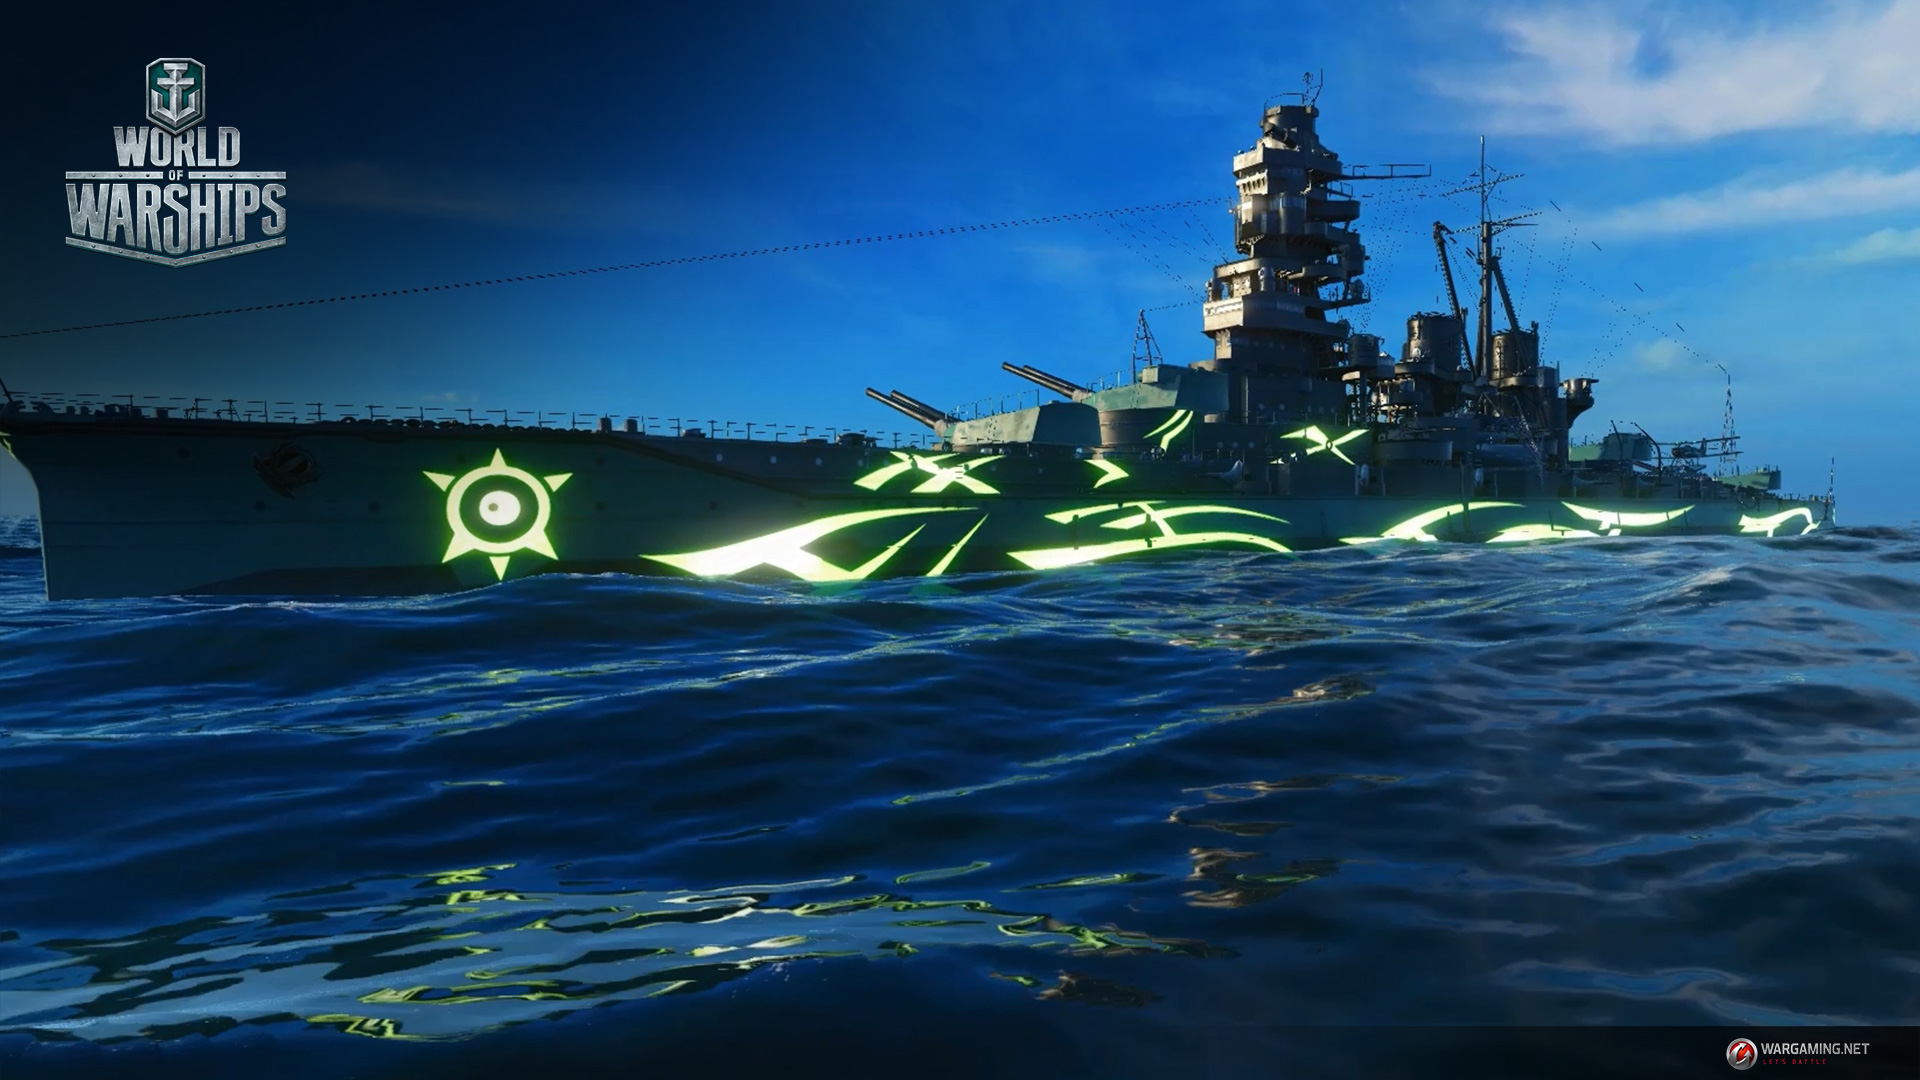 World Of Tanks Hd Wallpaper World Of Warships Will Soon Get Anime Inspired Game Mode